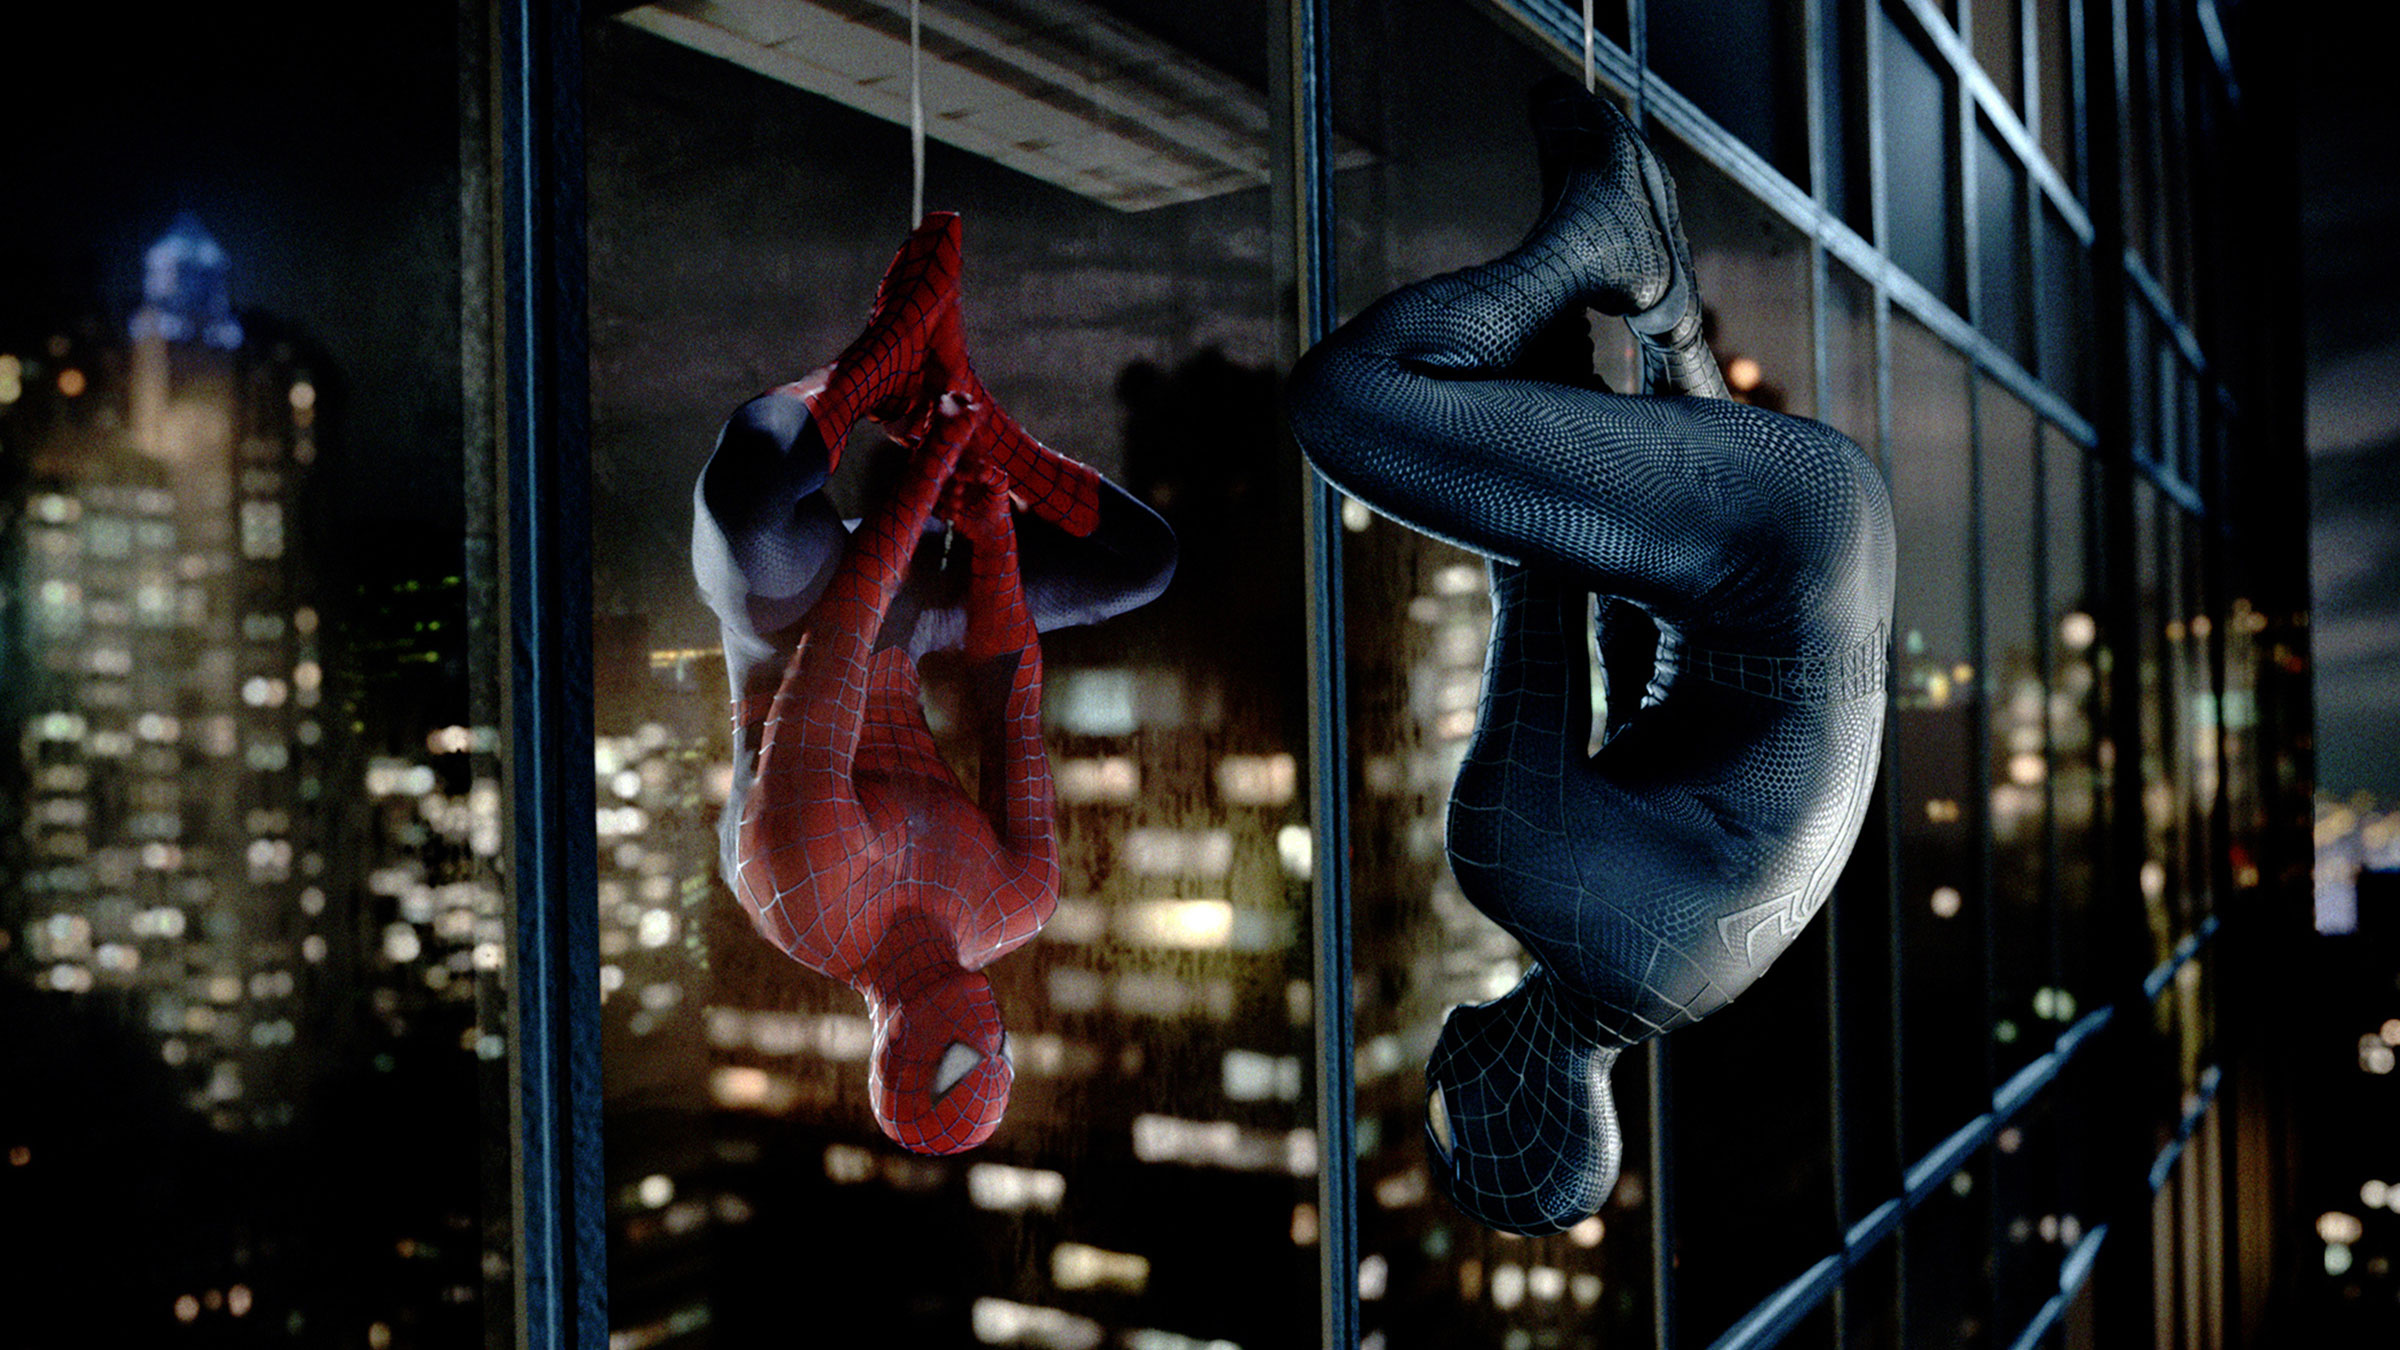 spider-man™ 3 | sony pictures museum